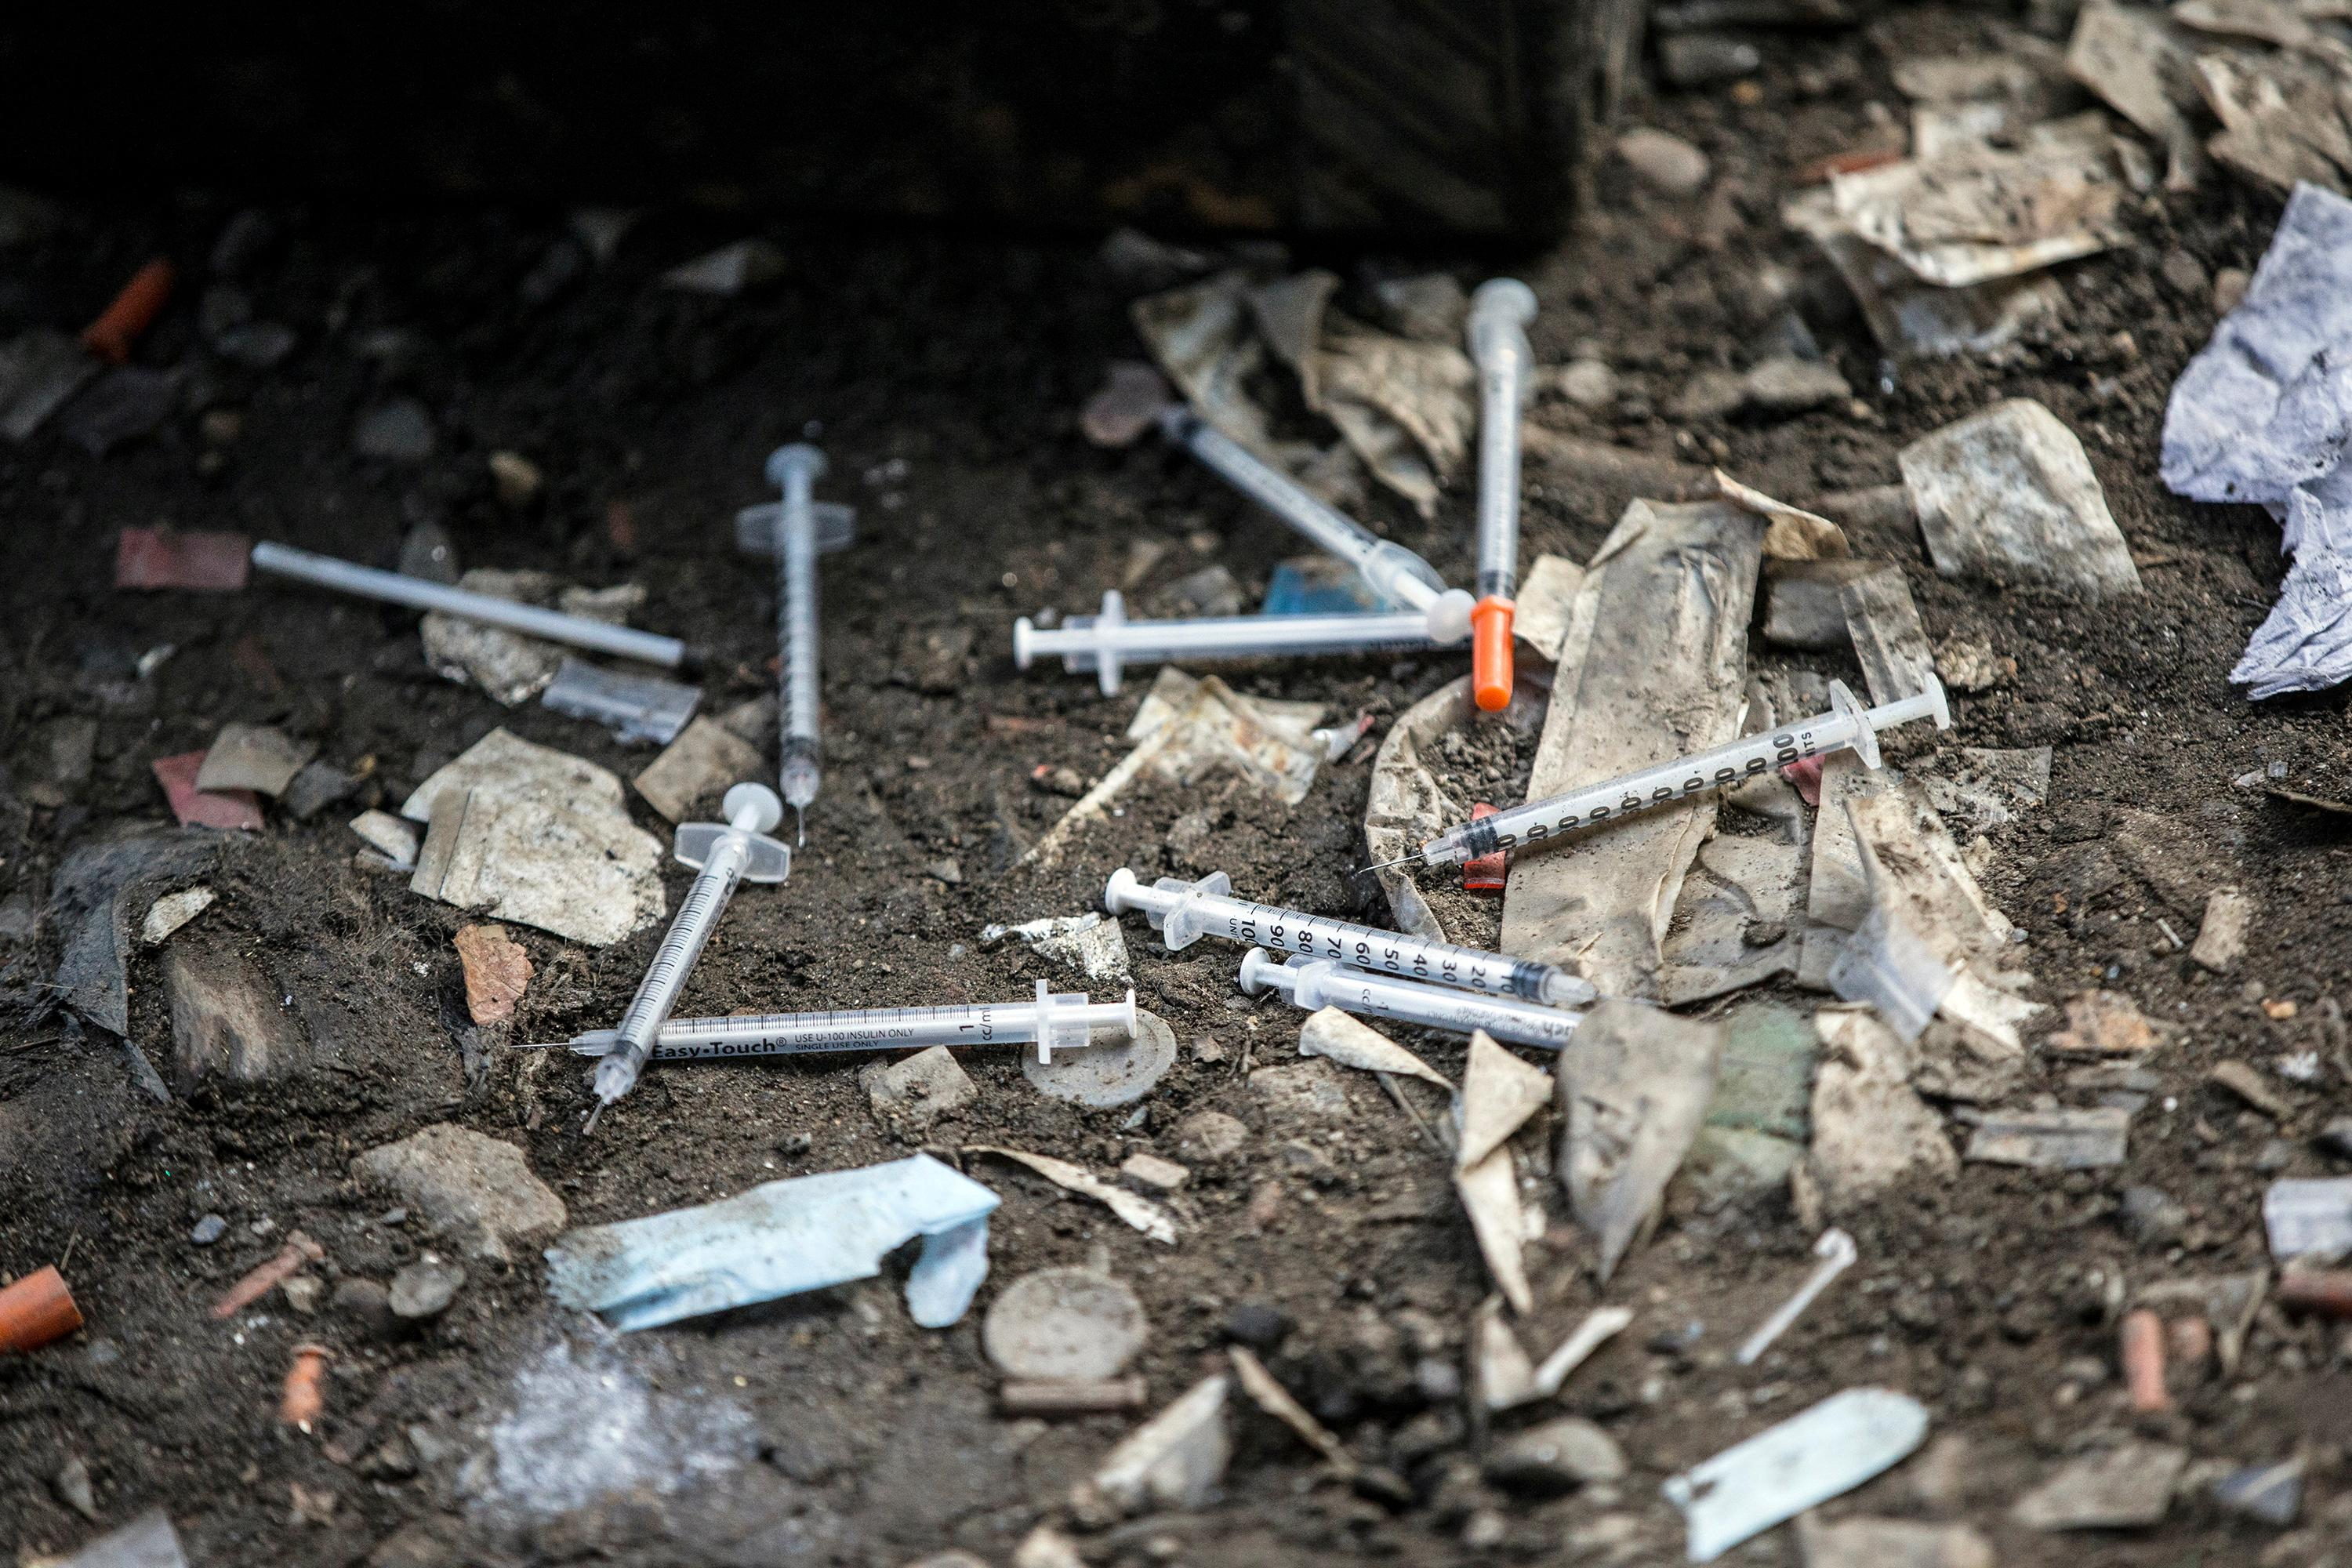 FILE – In this Feb. 2, 2017, file photo, used needles litter the ground at an open air drug market along Conrail train tracks in the Kensington section of Philadelphia. (Michael Bryant /The Philadelphia Inquirer via AP, File)<p></p>